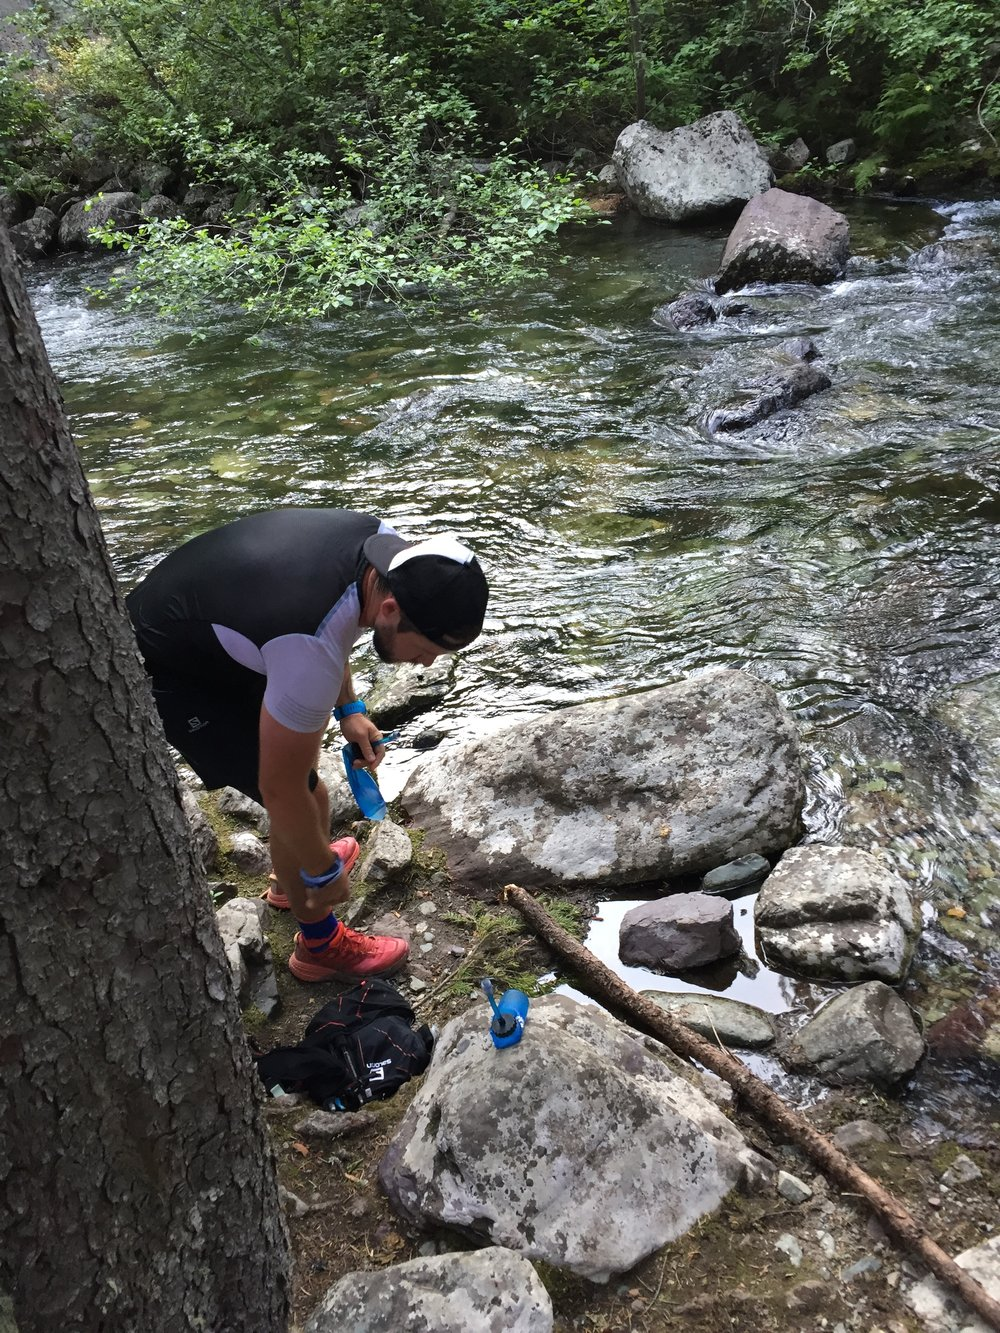 Sam getting ready to purify his creek water.